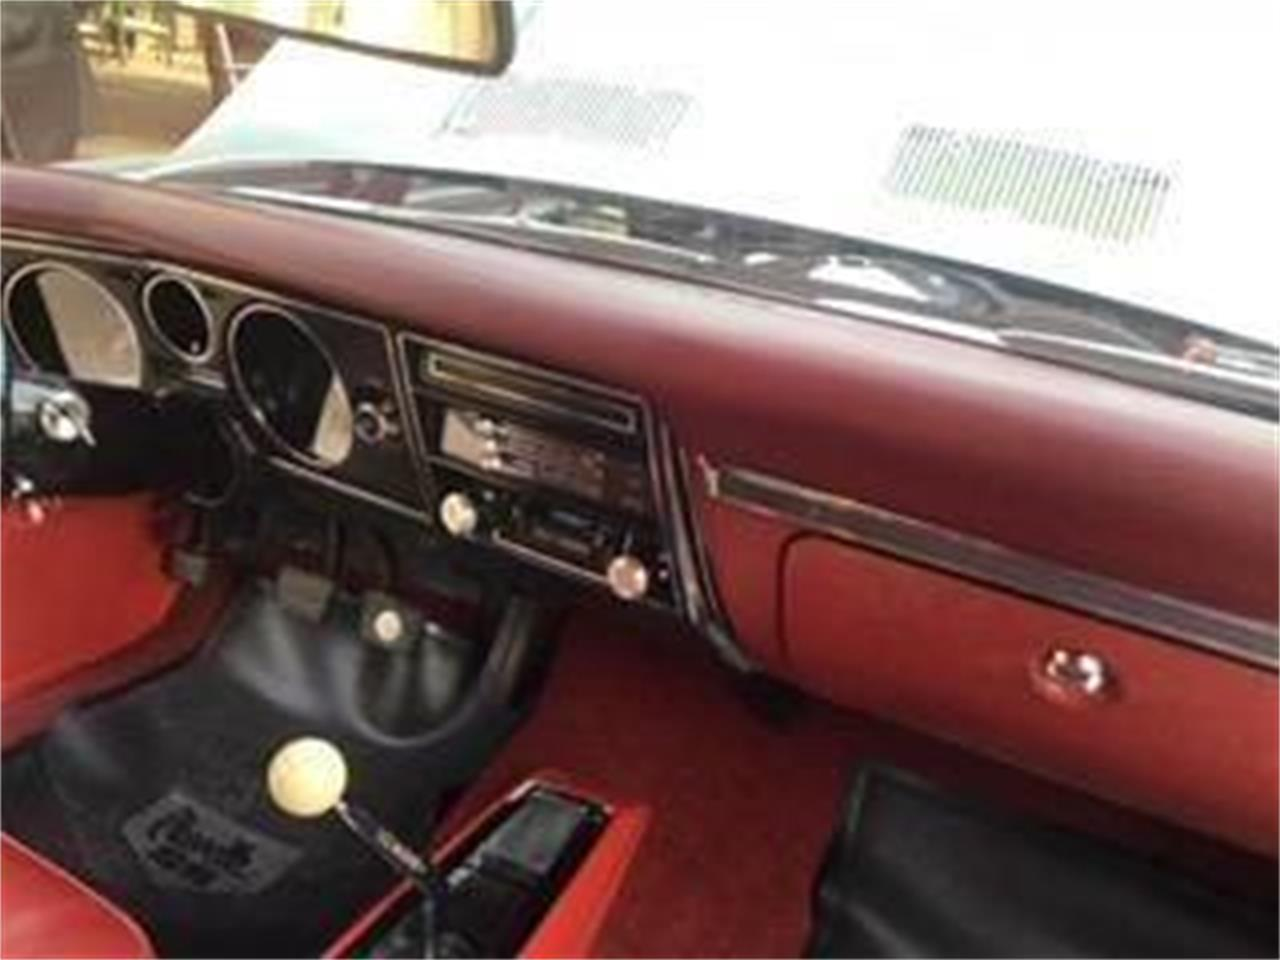 1969 Chevrolet Chevelle for sale in Long Island, NY – photo 5